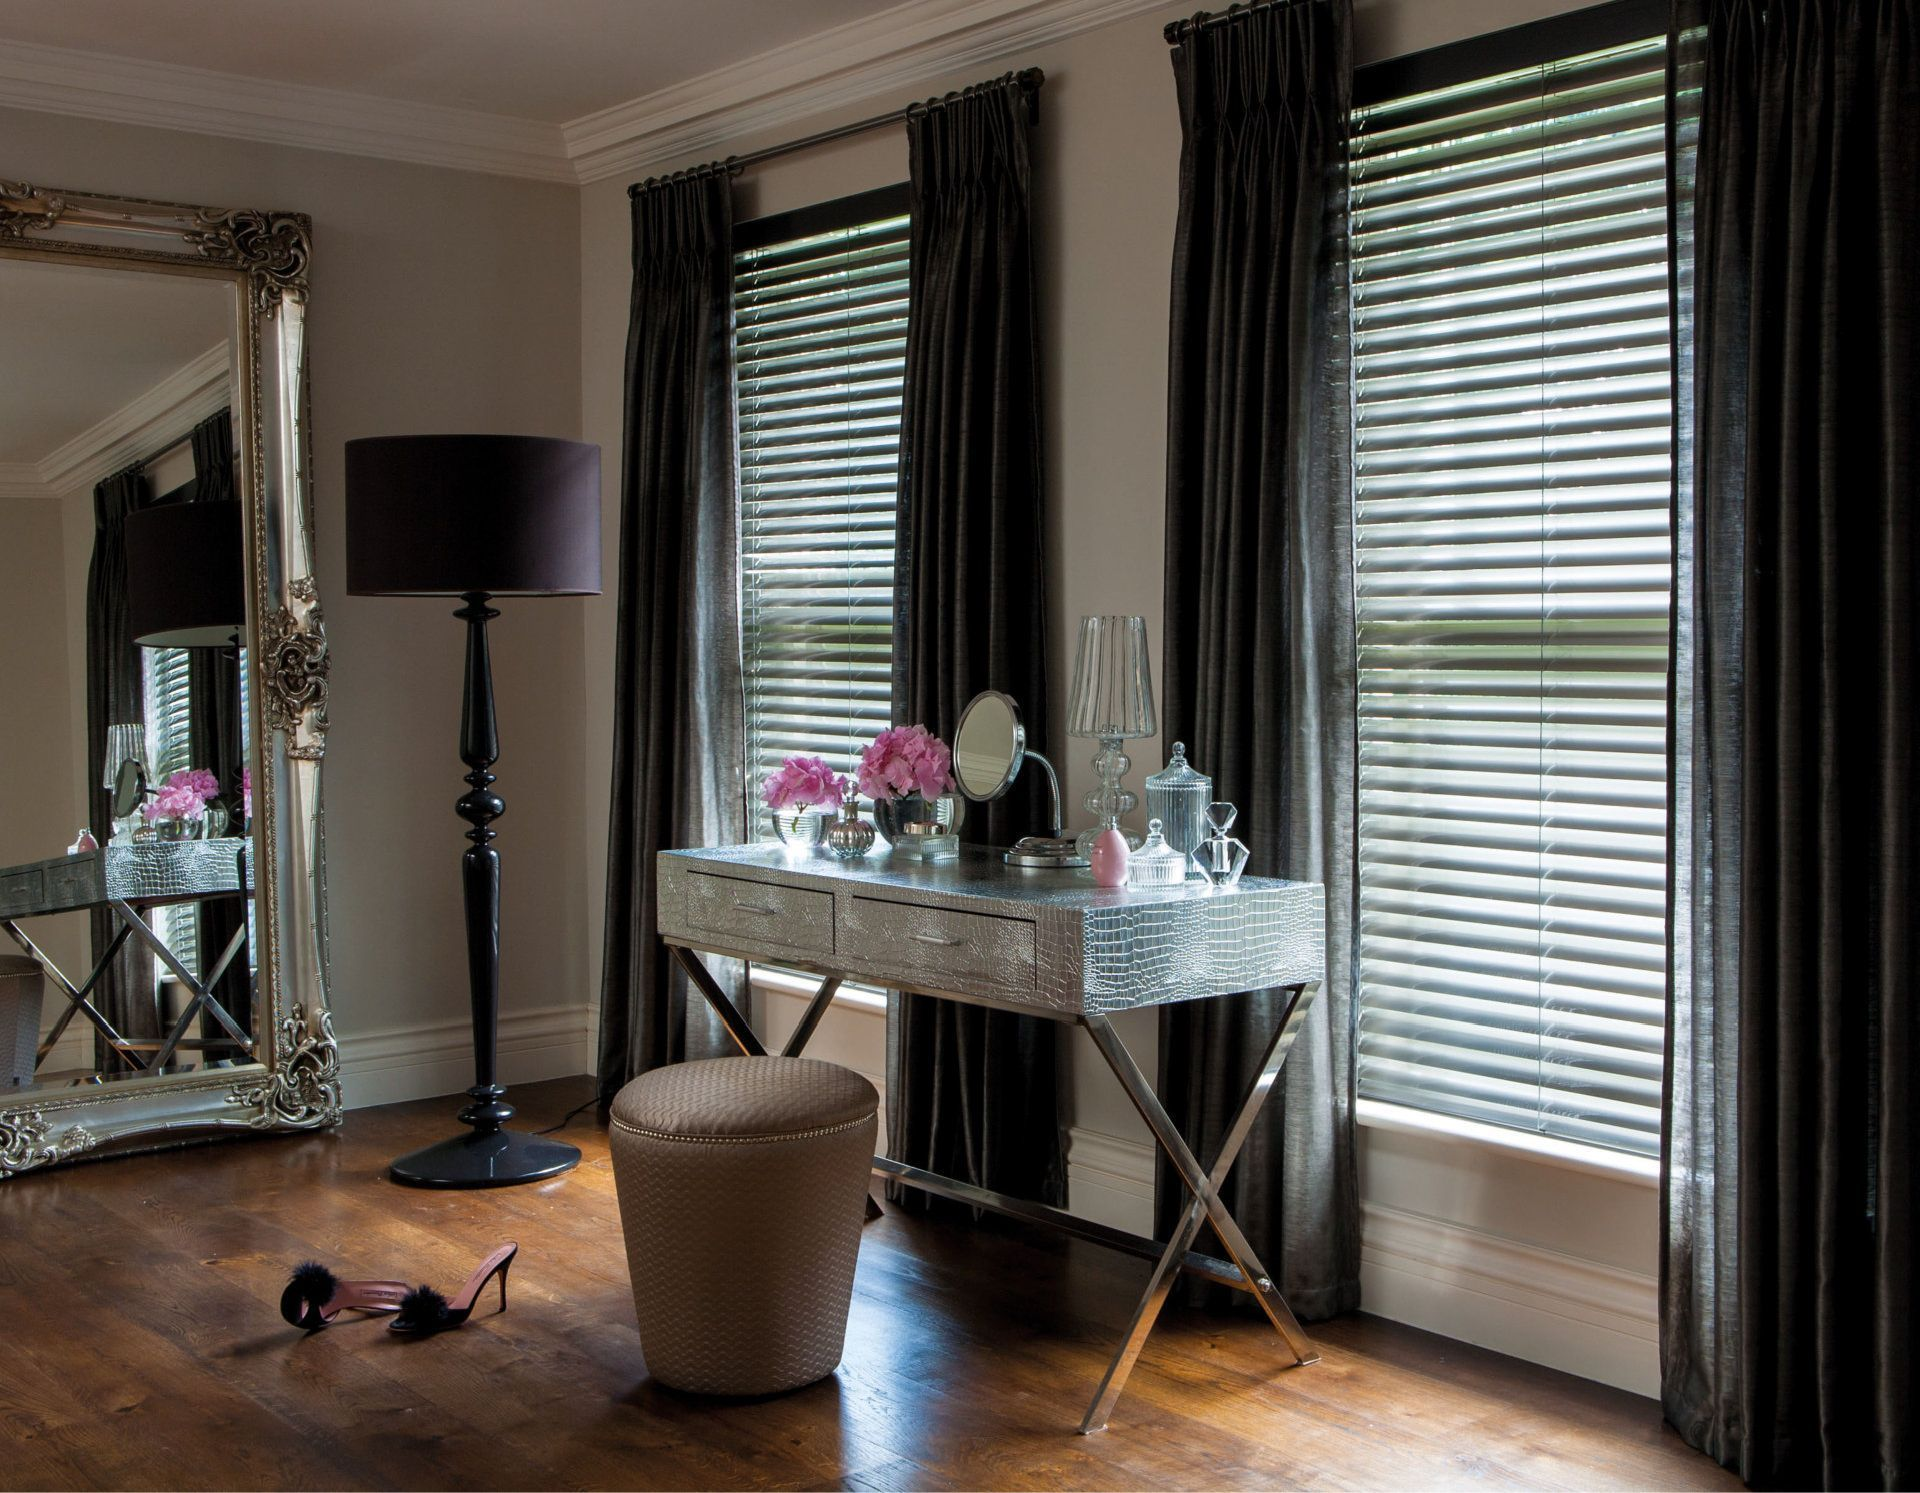 14 Delicate Painting Roller Blinds Ideas With Images Blinds Design Wooden Blinds Curtains With Blinds